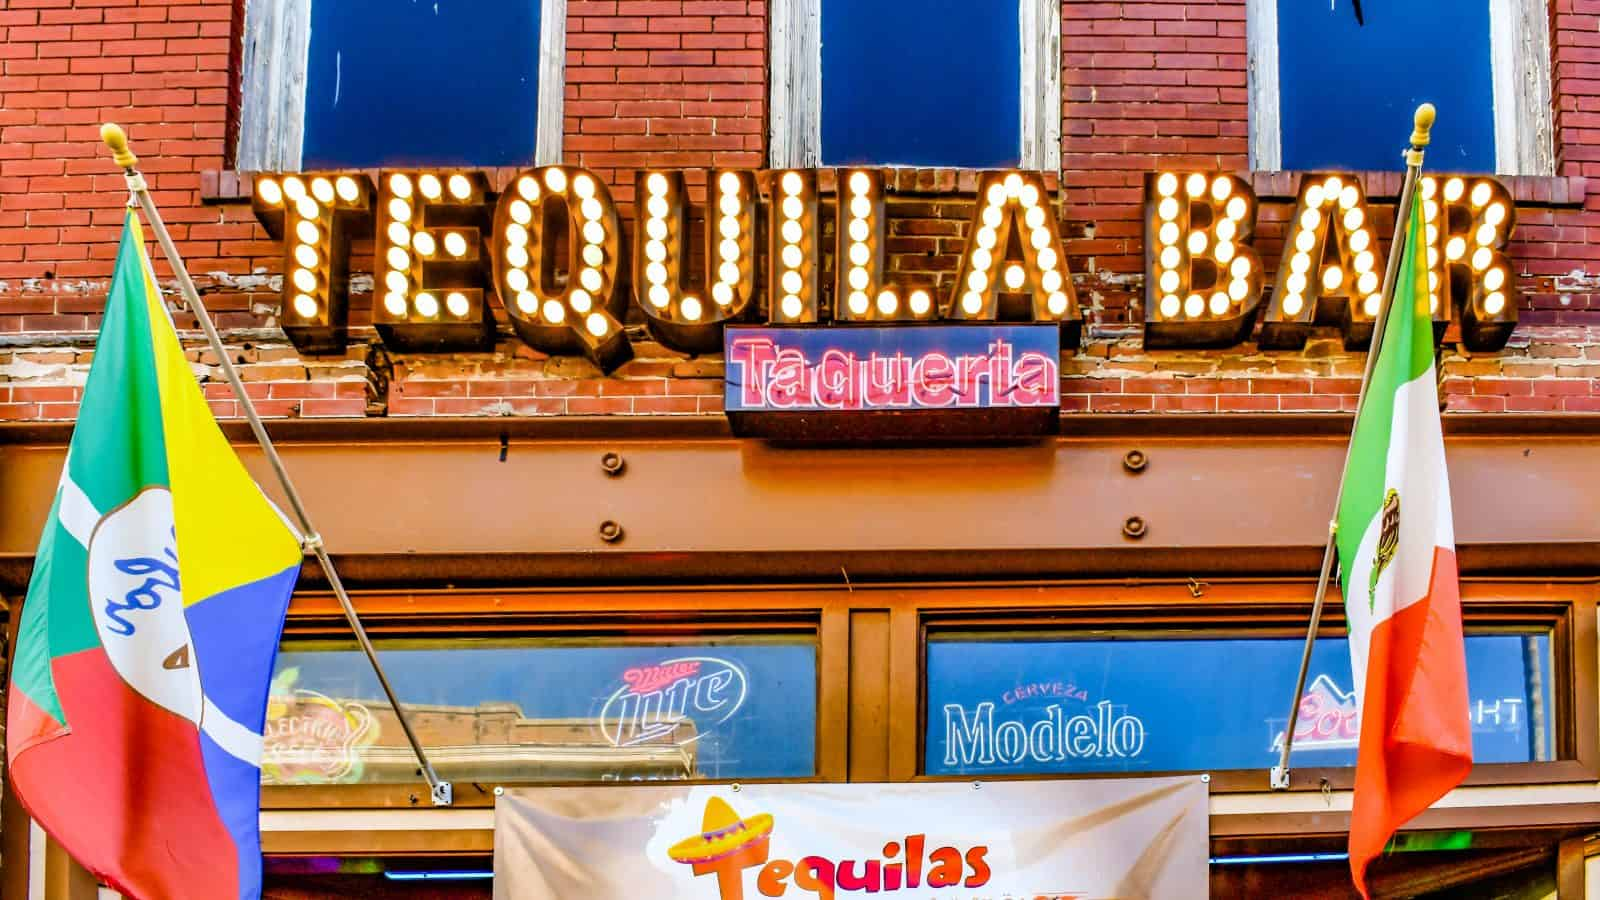 tequilas is one of the best mexican restaurants in tampa